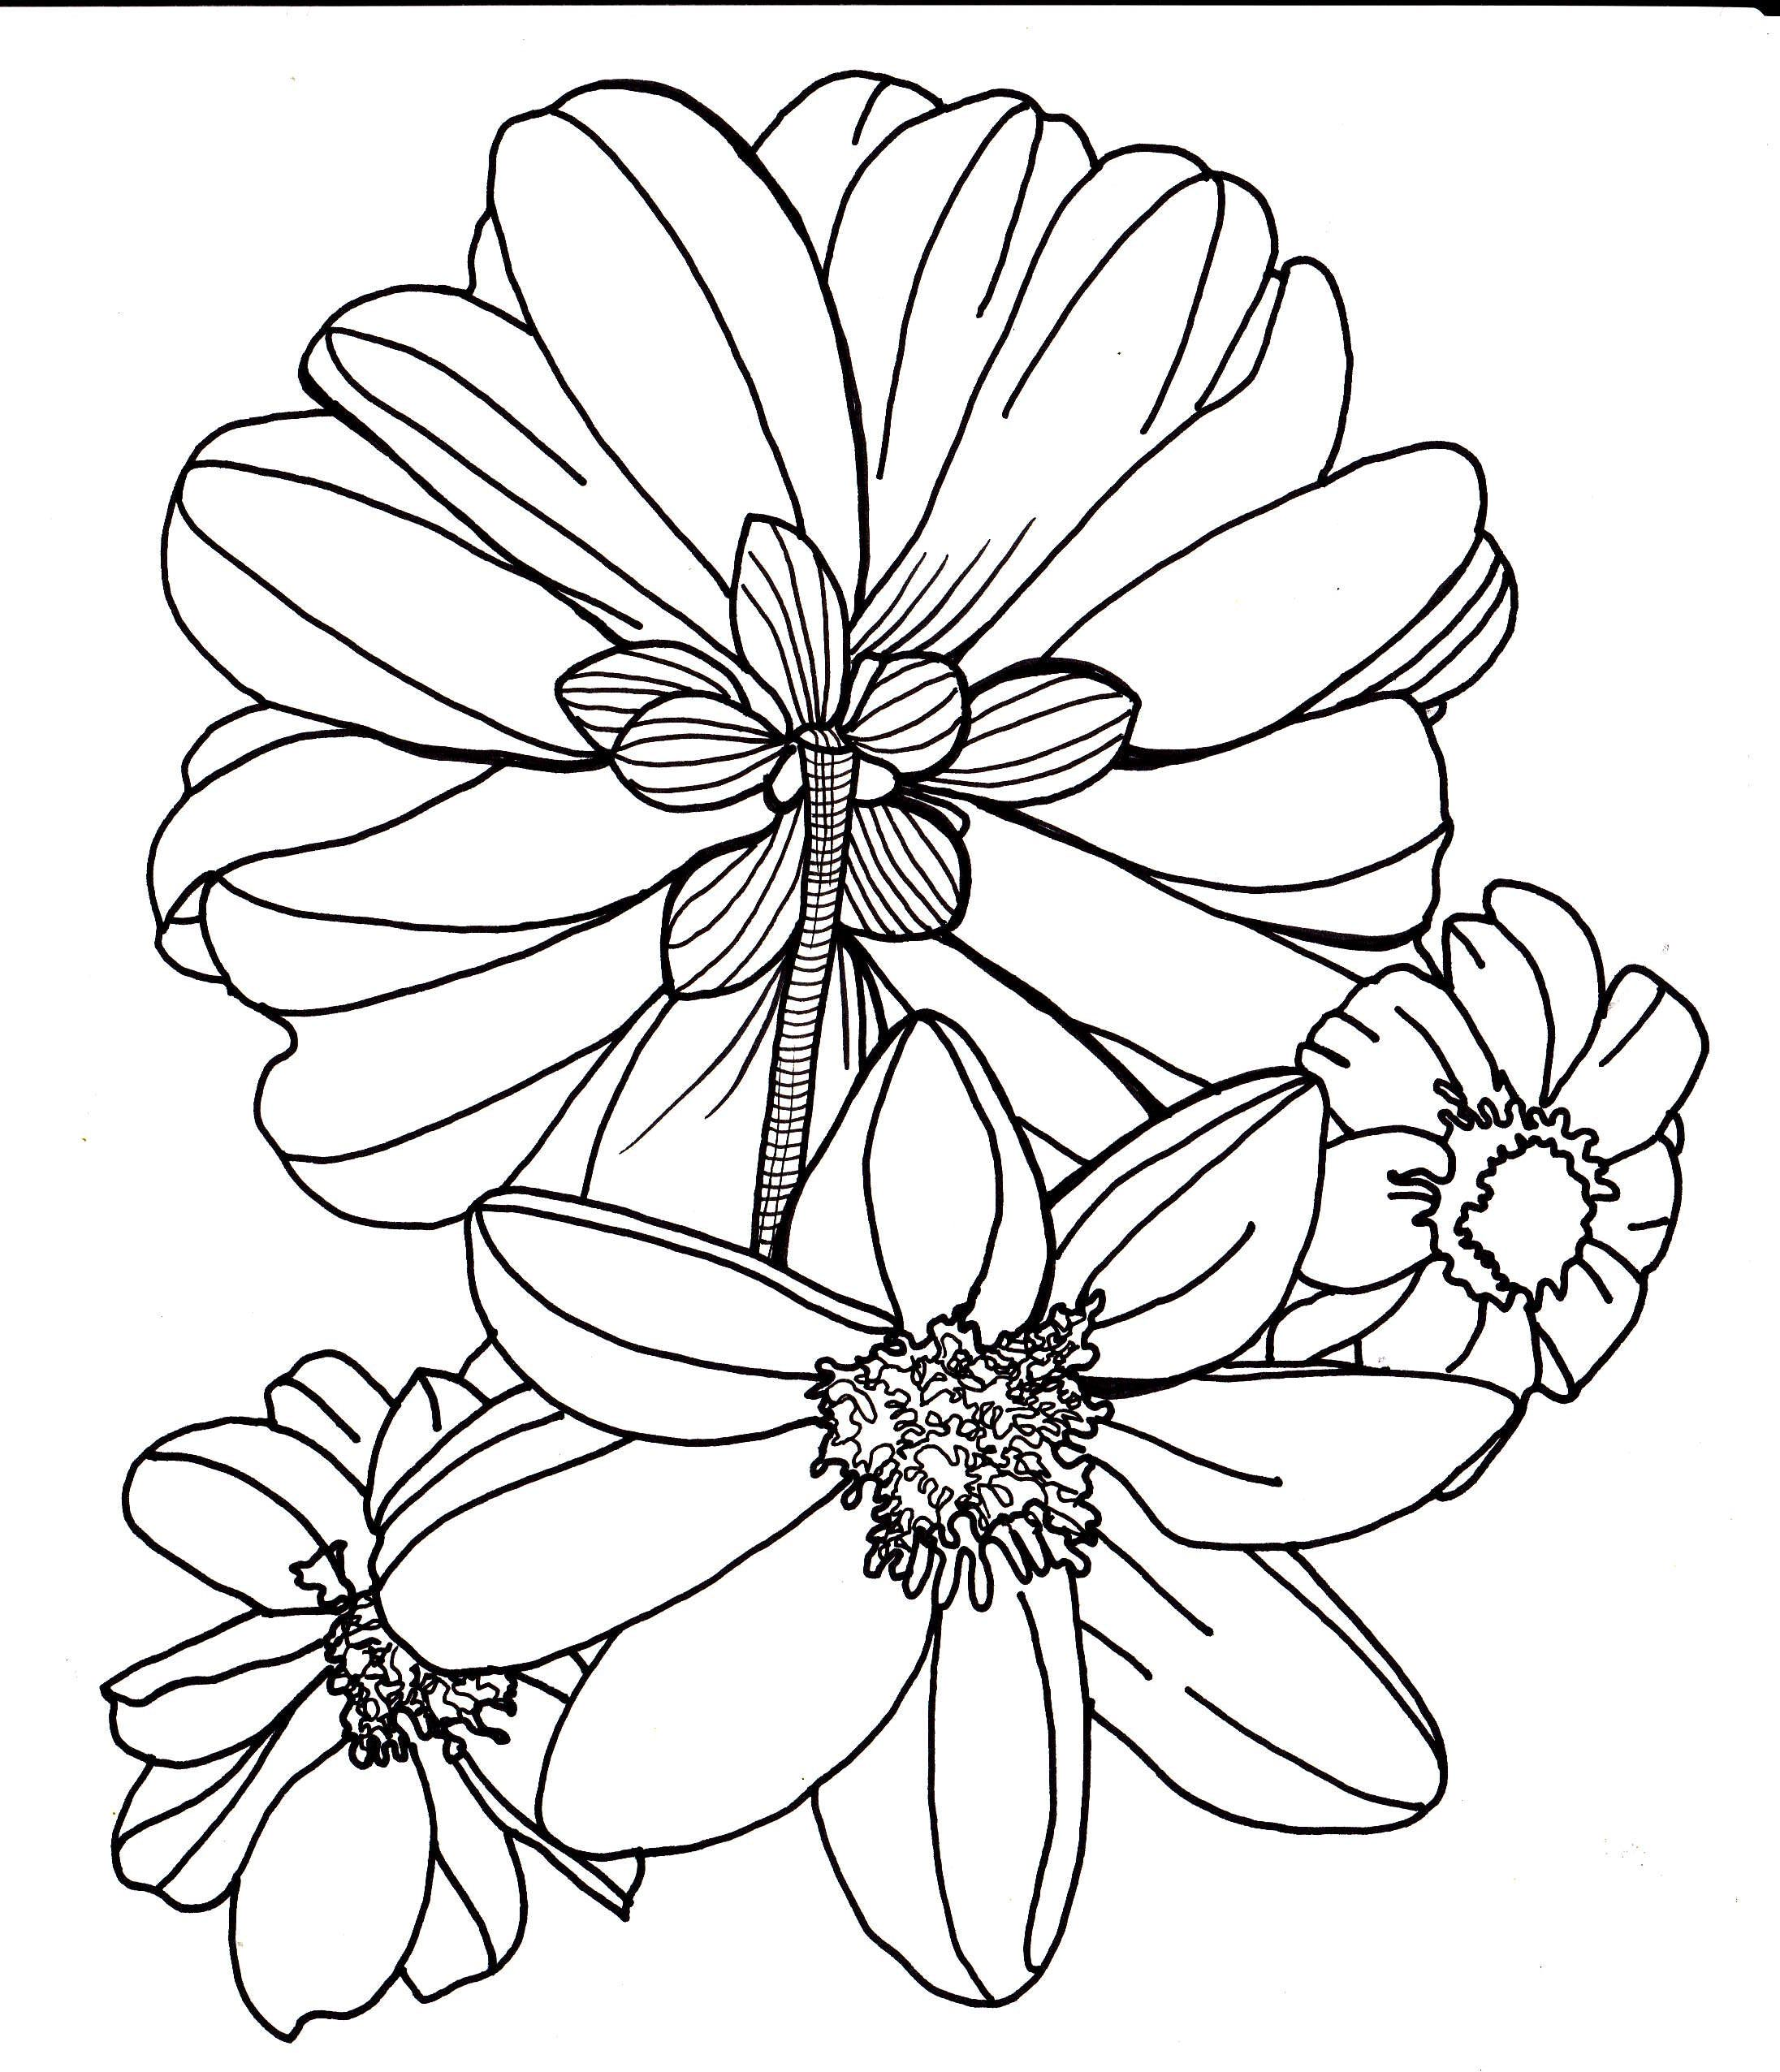 Single Line Drawing Flowers : Line drawing flowers dahlias drawings pinterest